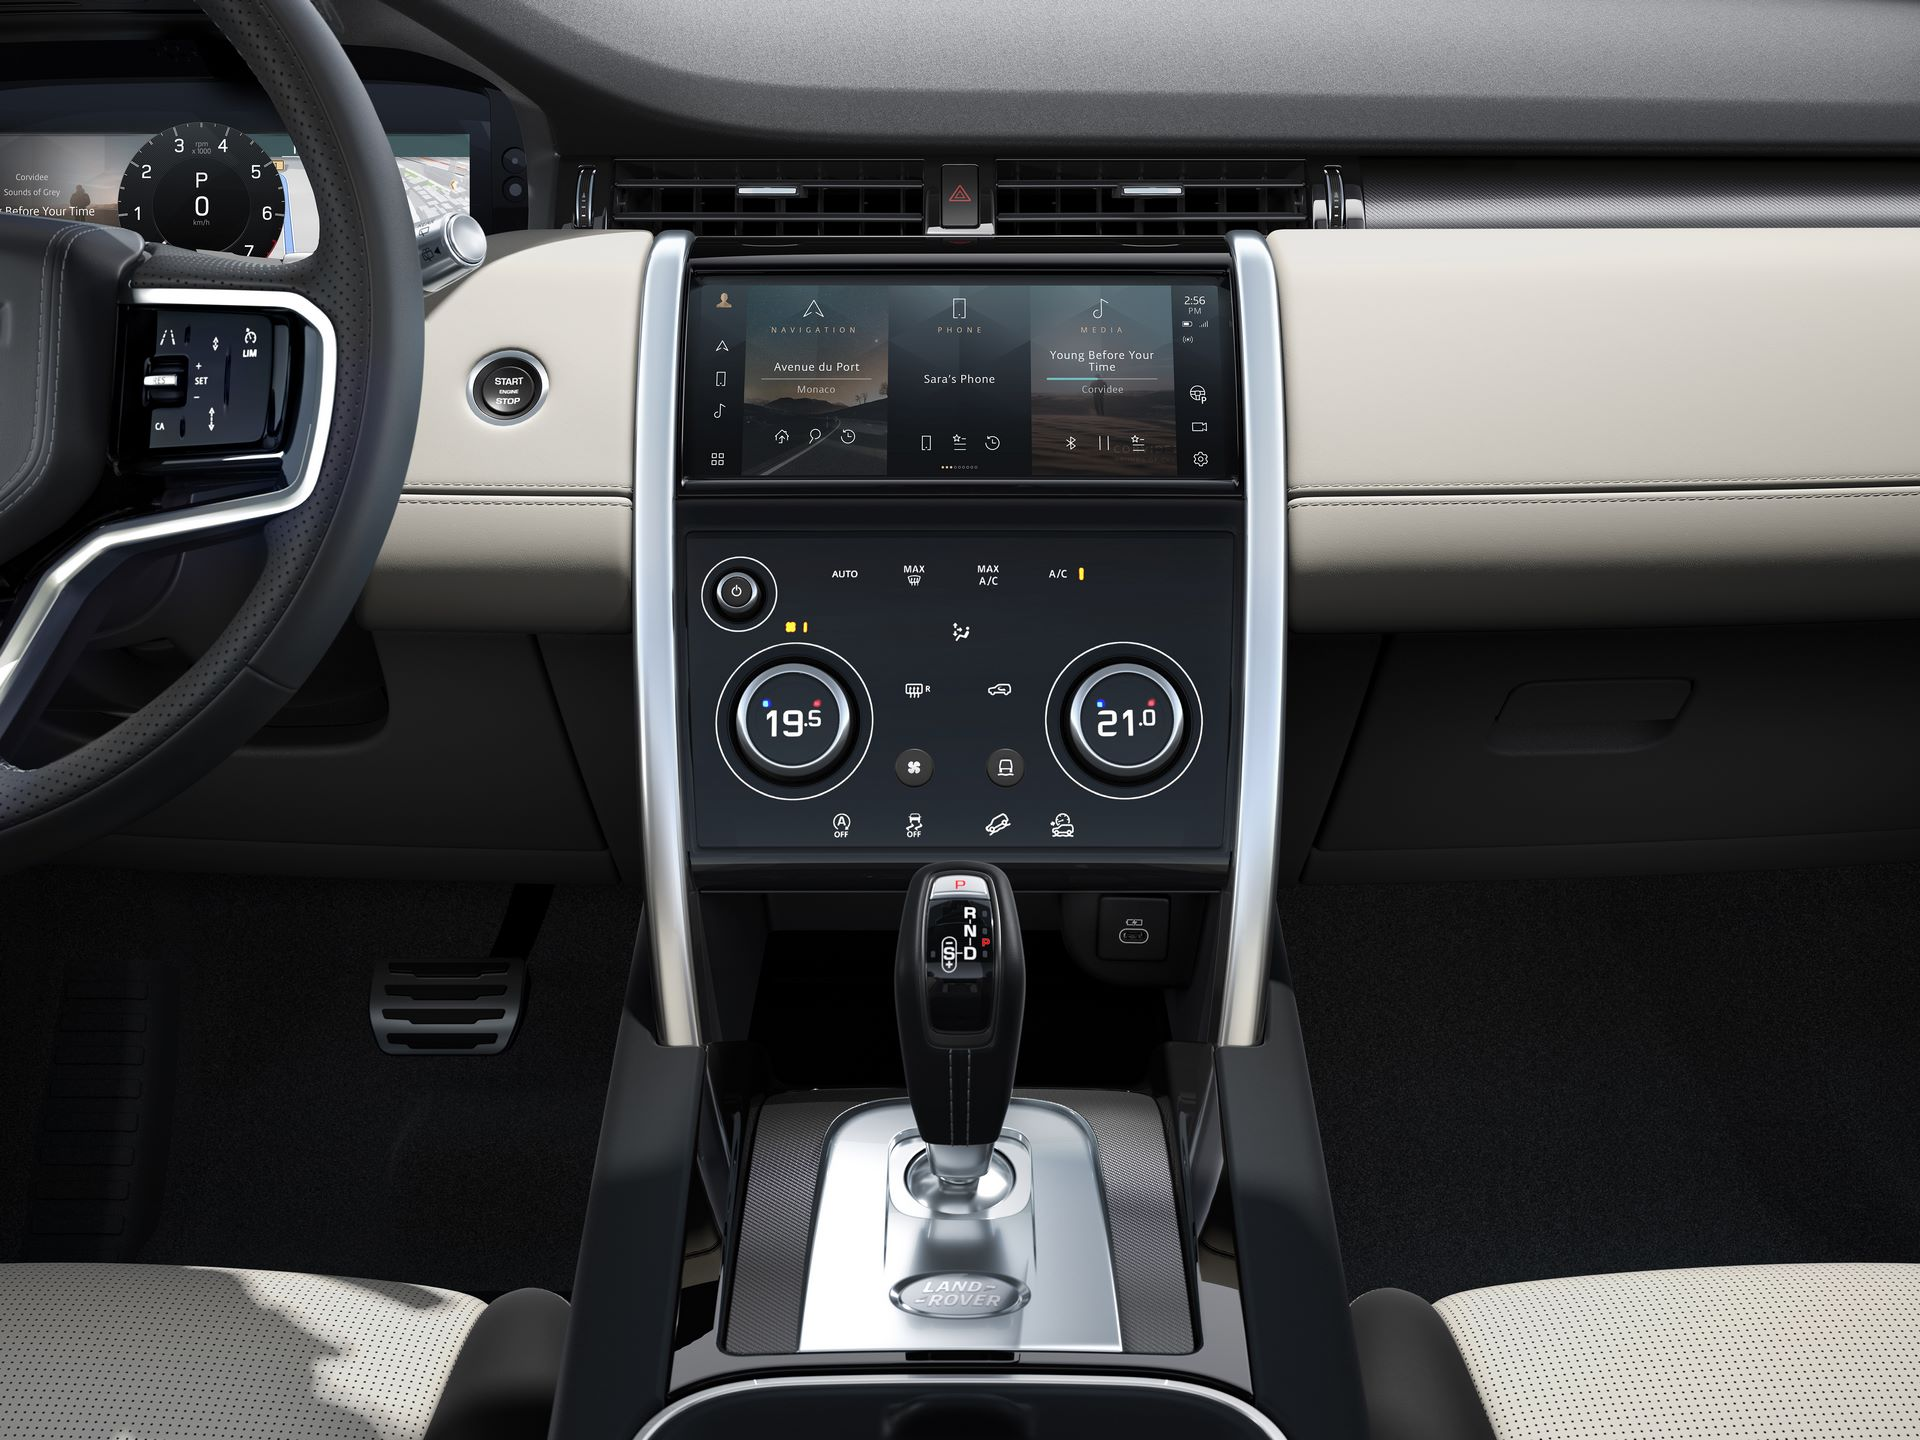 Range-Rover-Evoque-and-Land-Rover-Discovery-Sport-MHEV-diesel-22